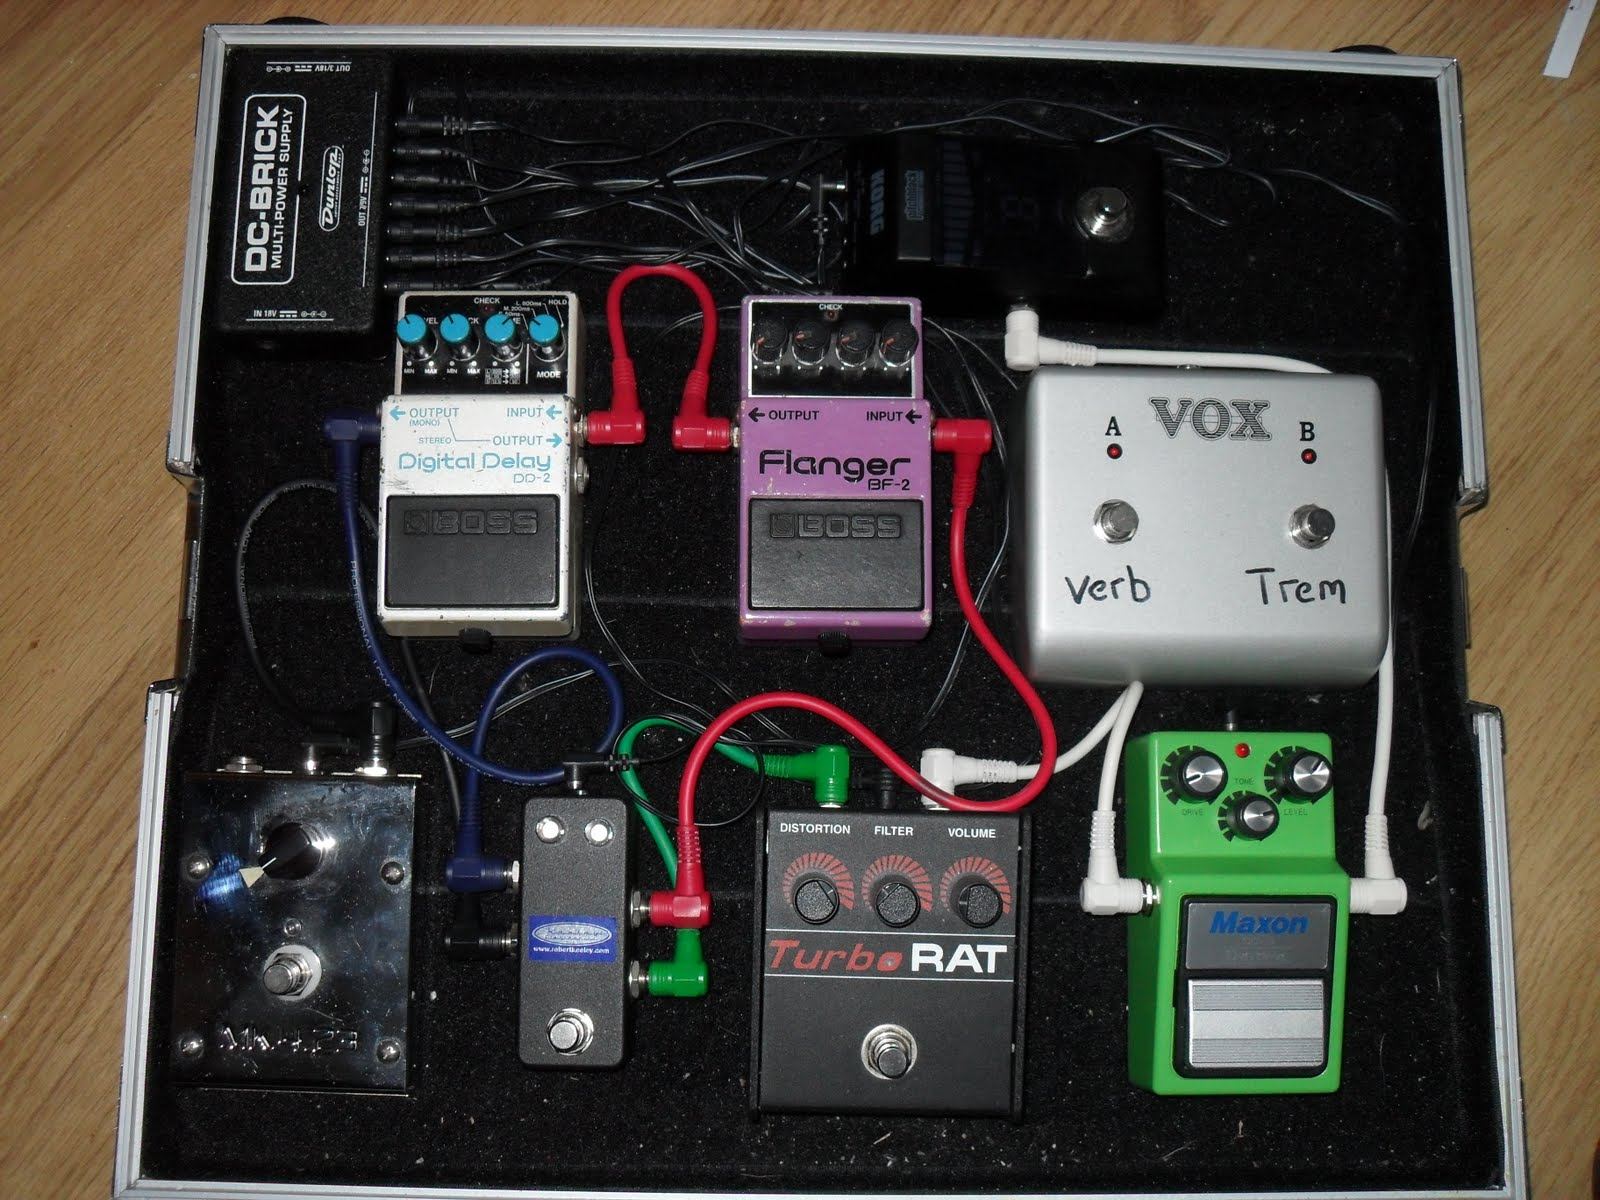 The Guitar Project Pedalboard Wiring Diagram This Post Is On Latest Version Of My Pedal Board Ive Designed For A Killer Tone Using Mostly True Bypass Pedals And Couple Old